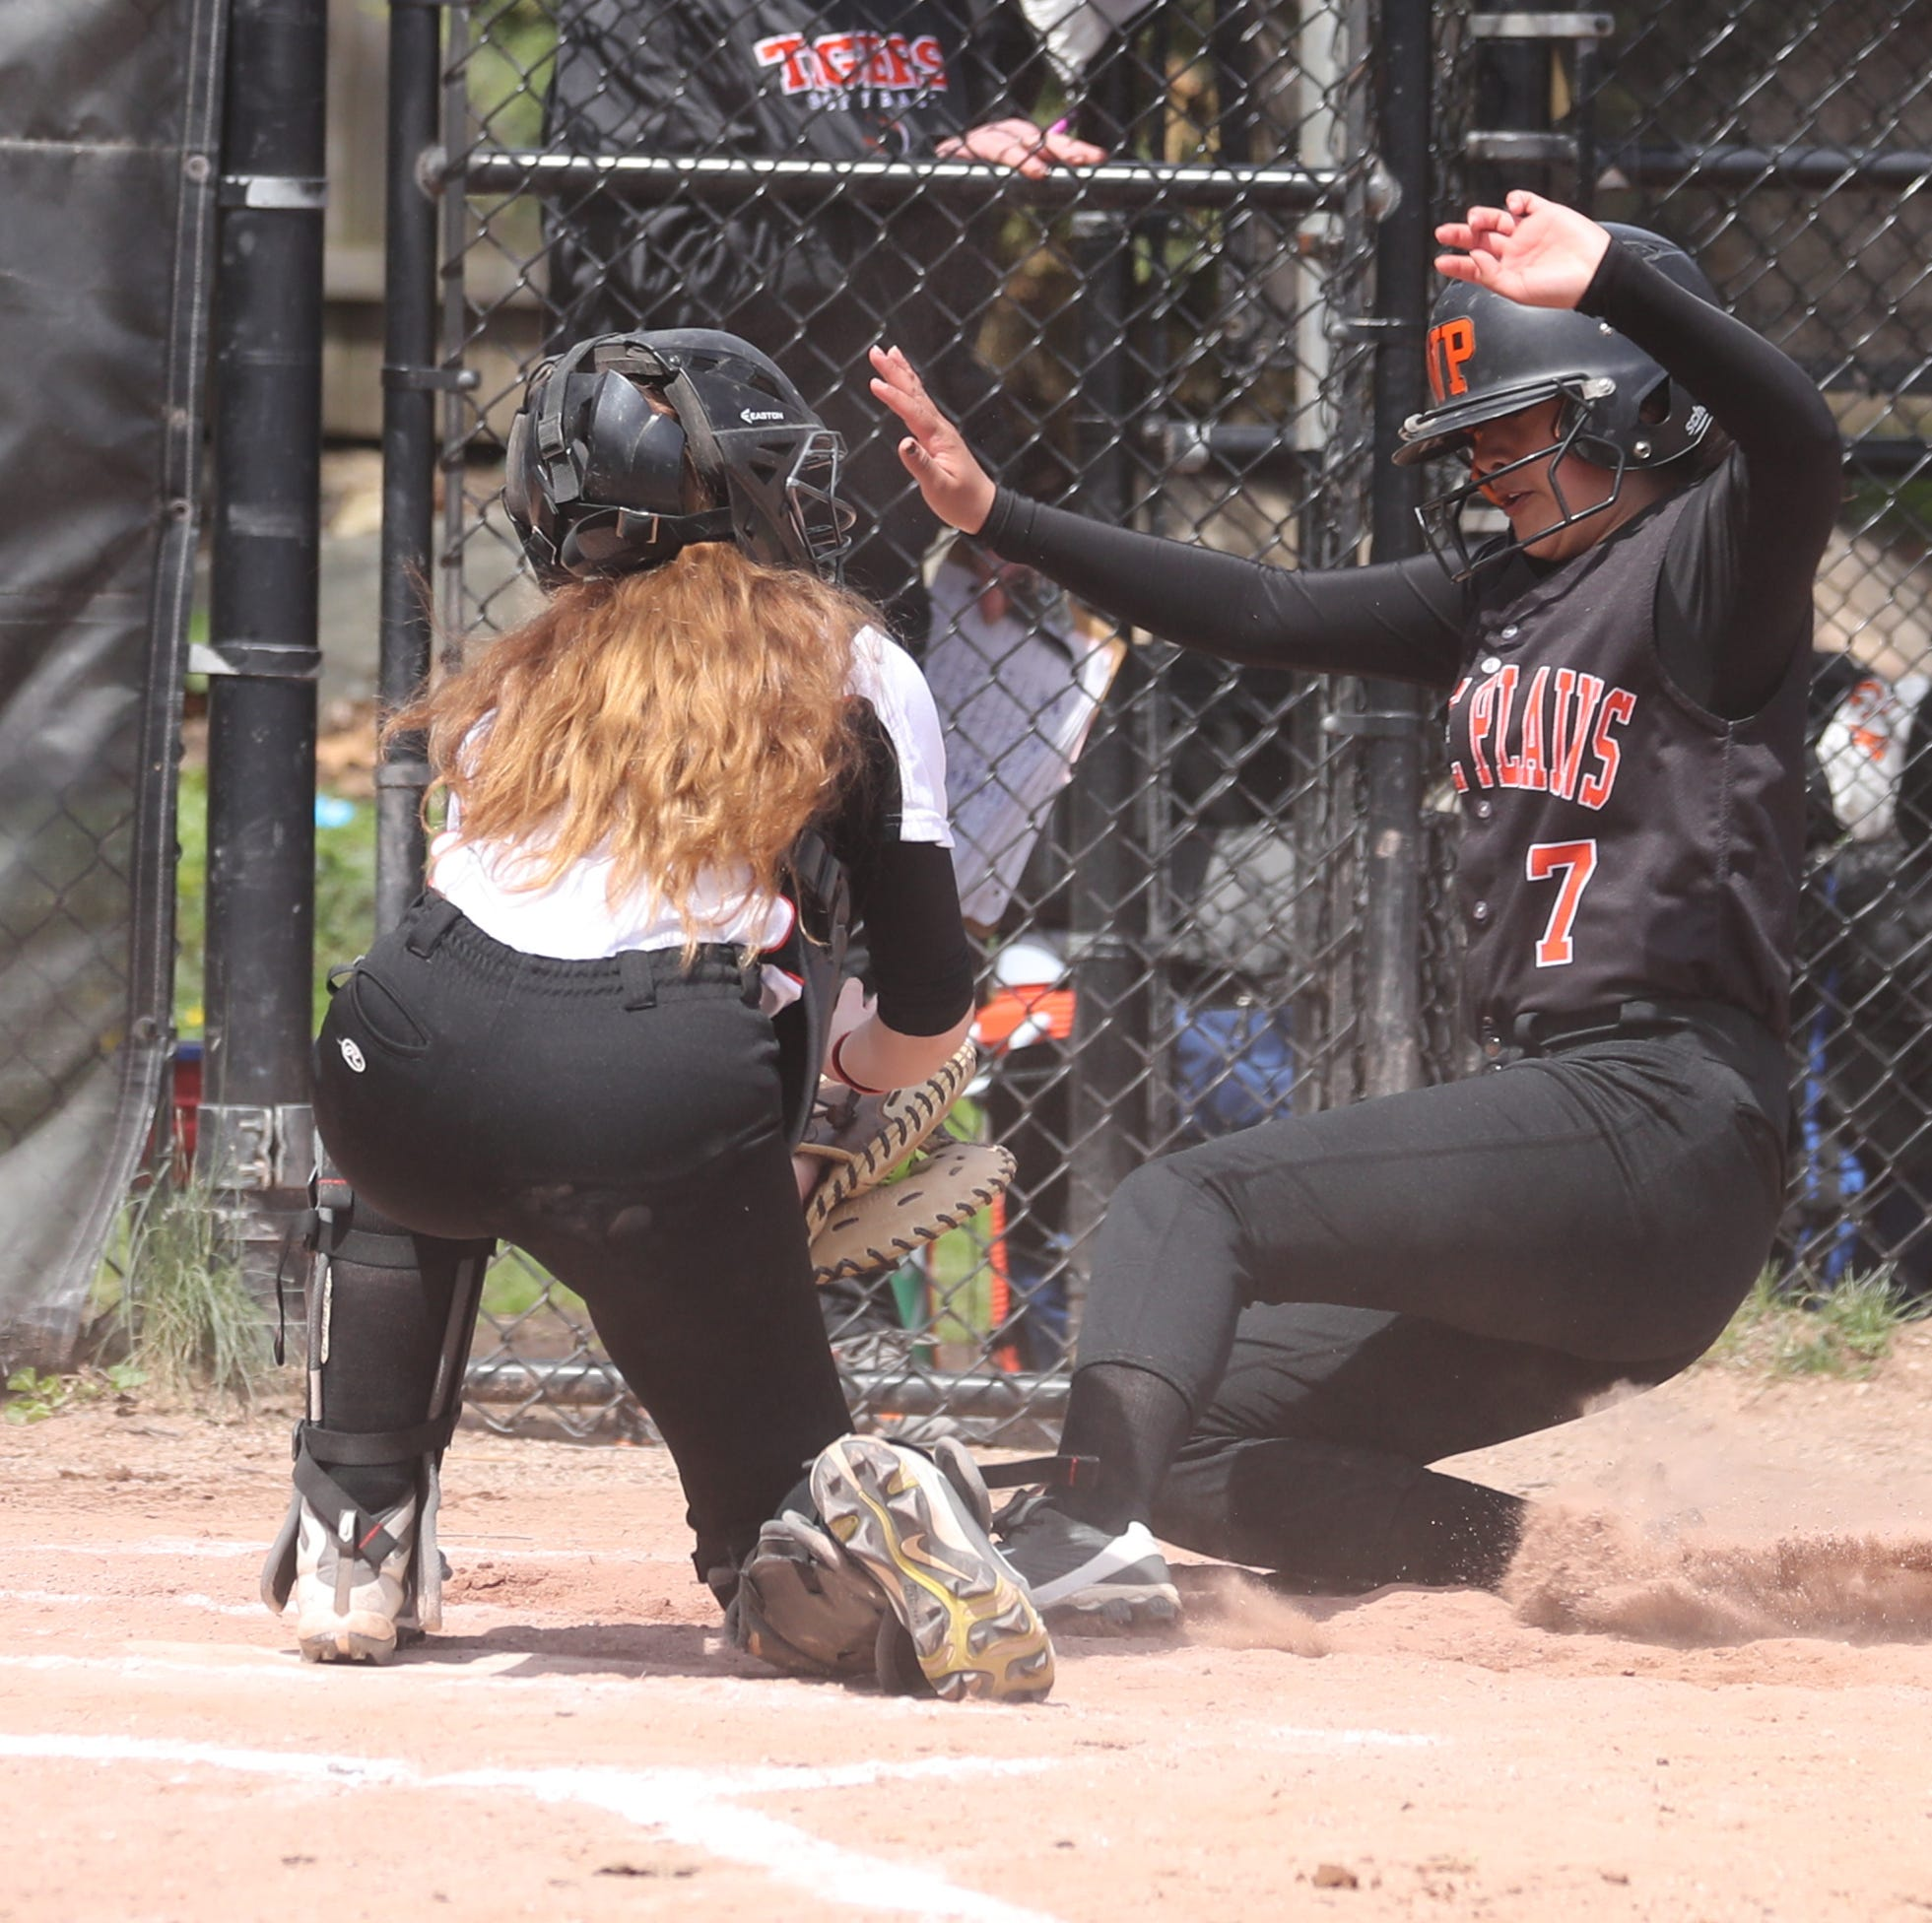 Lohud Softball: Midseason progress report of top teams and top players